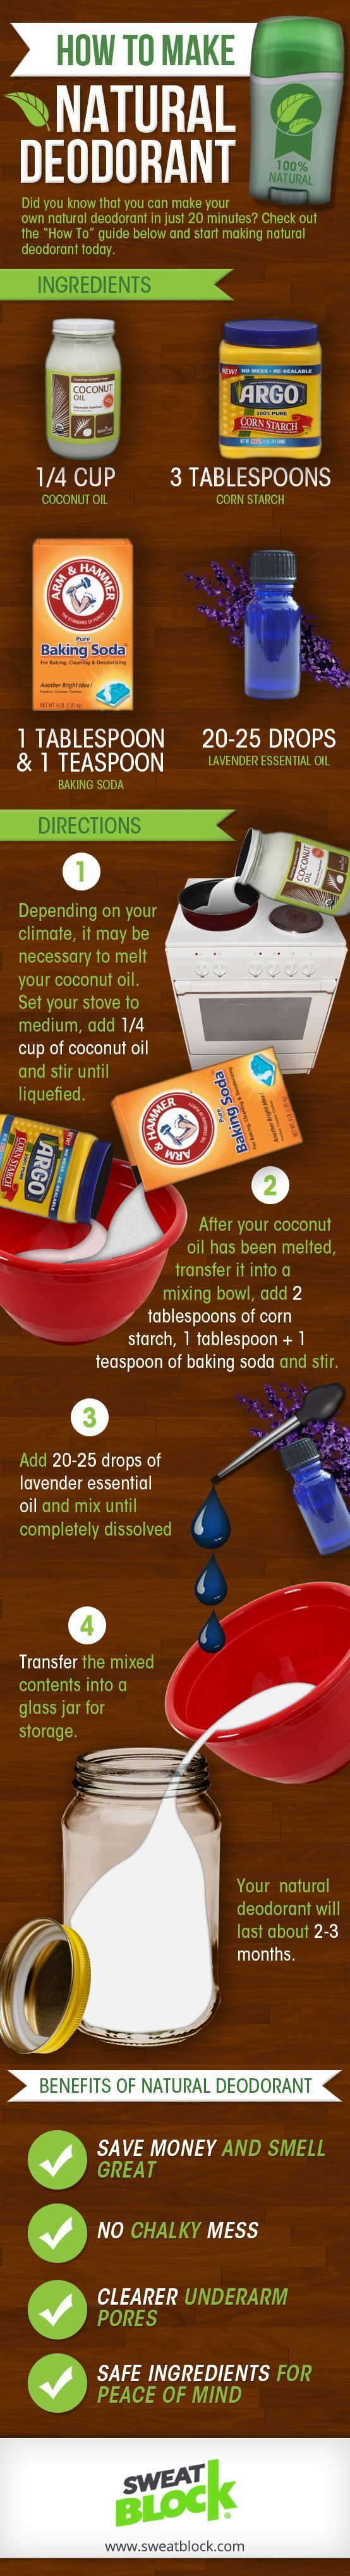 "Did you know that you can make your own natural deodorant in just 20 minutes? Check out the ""How To"" guide below and start making natural deodorant today. Source:http://www.sweatblock.com/"